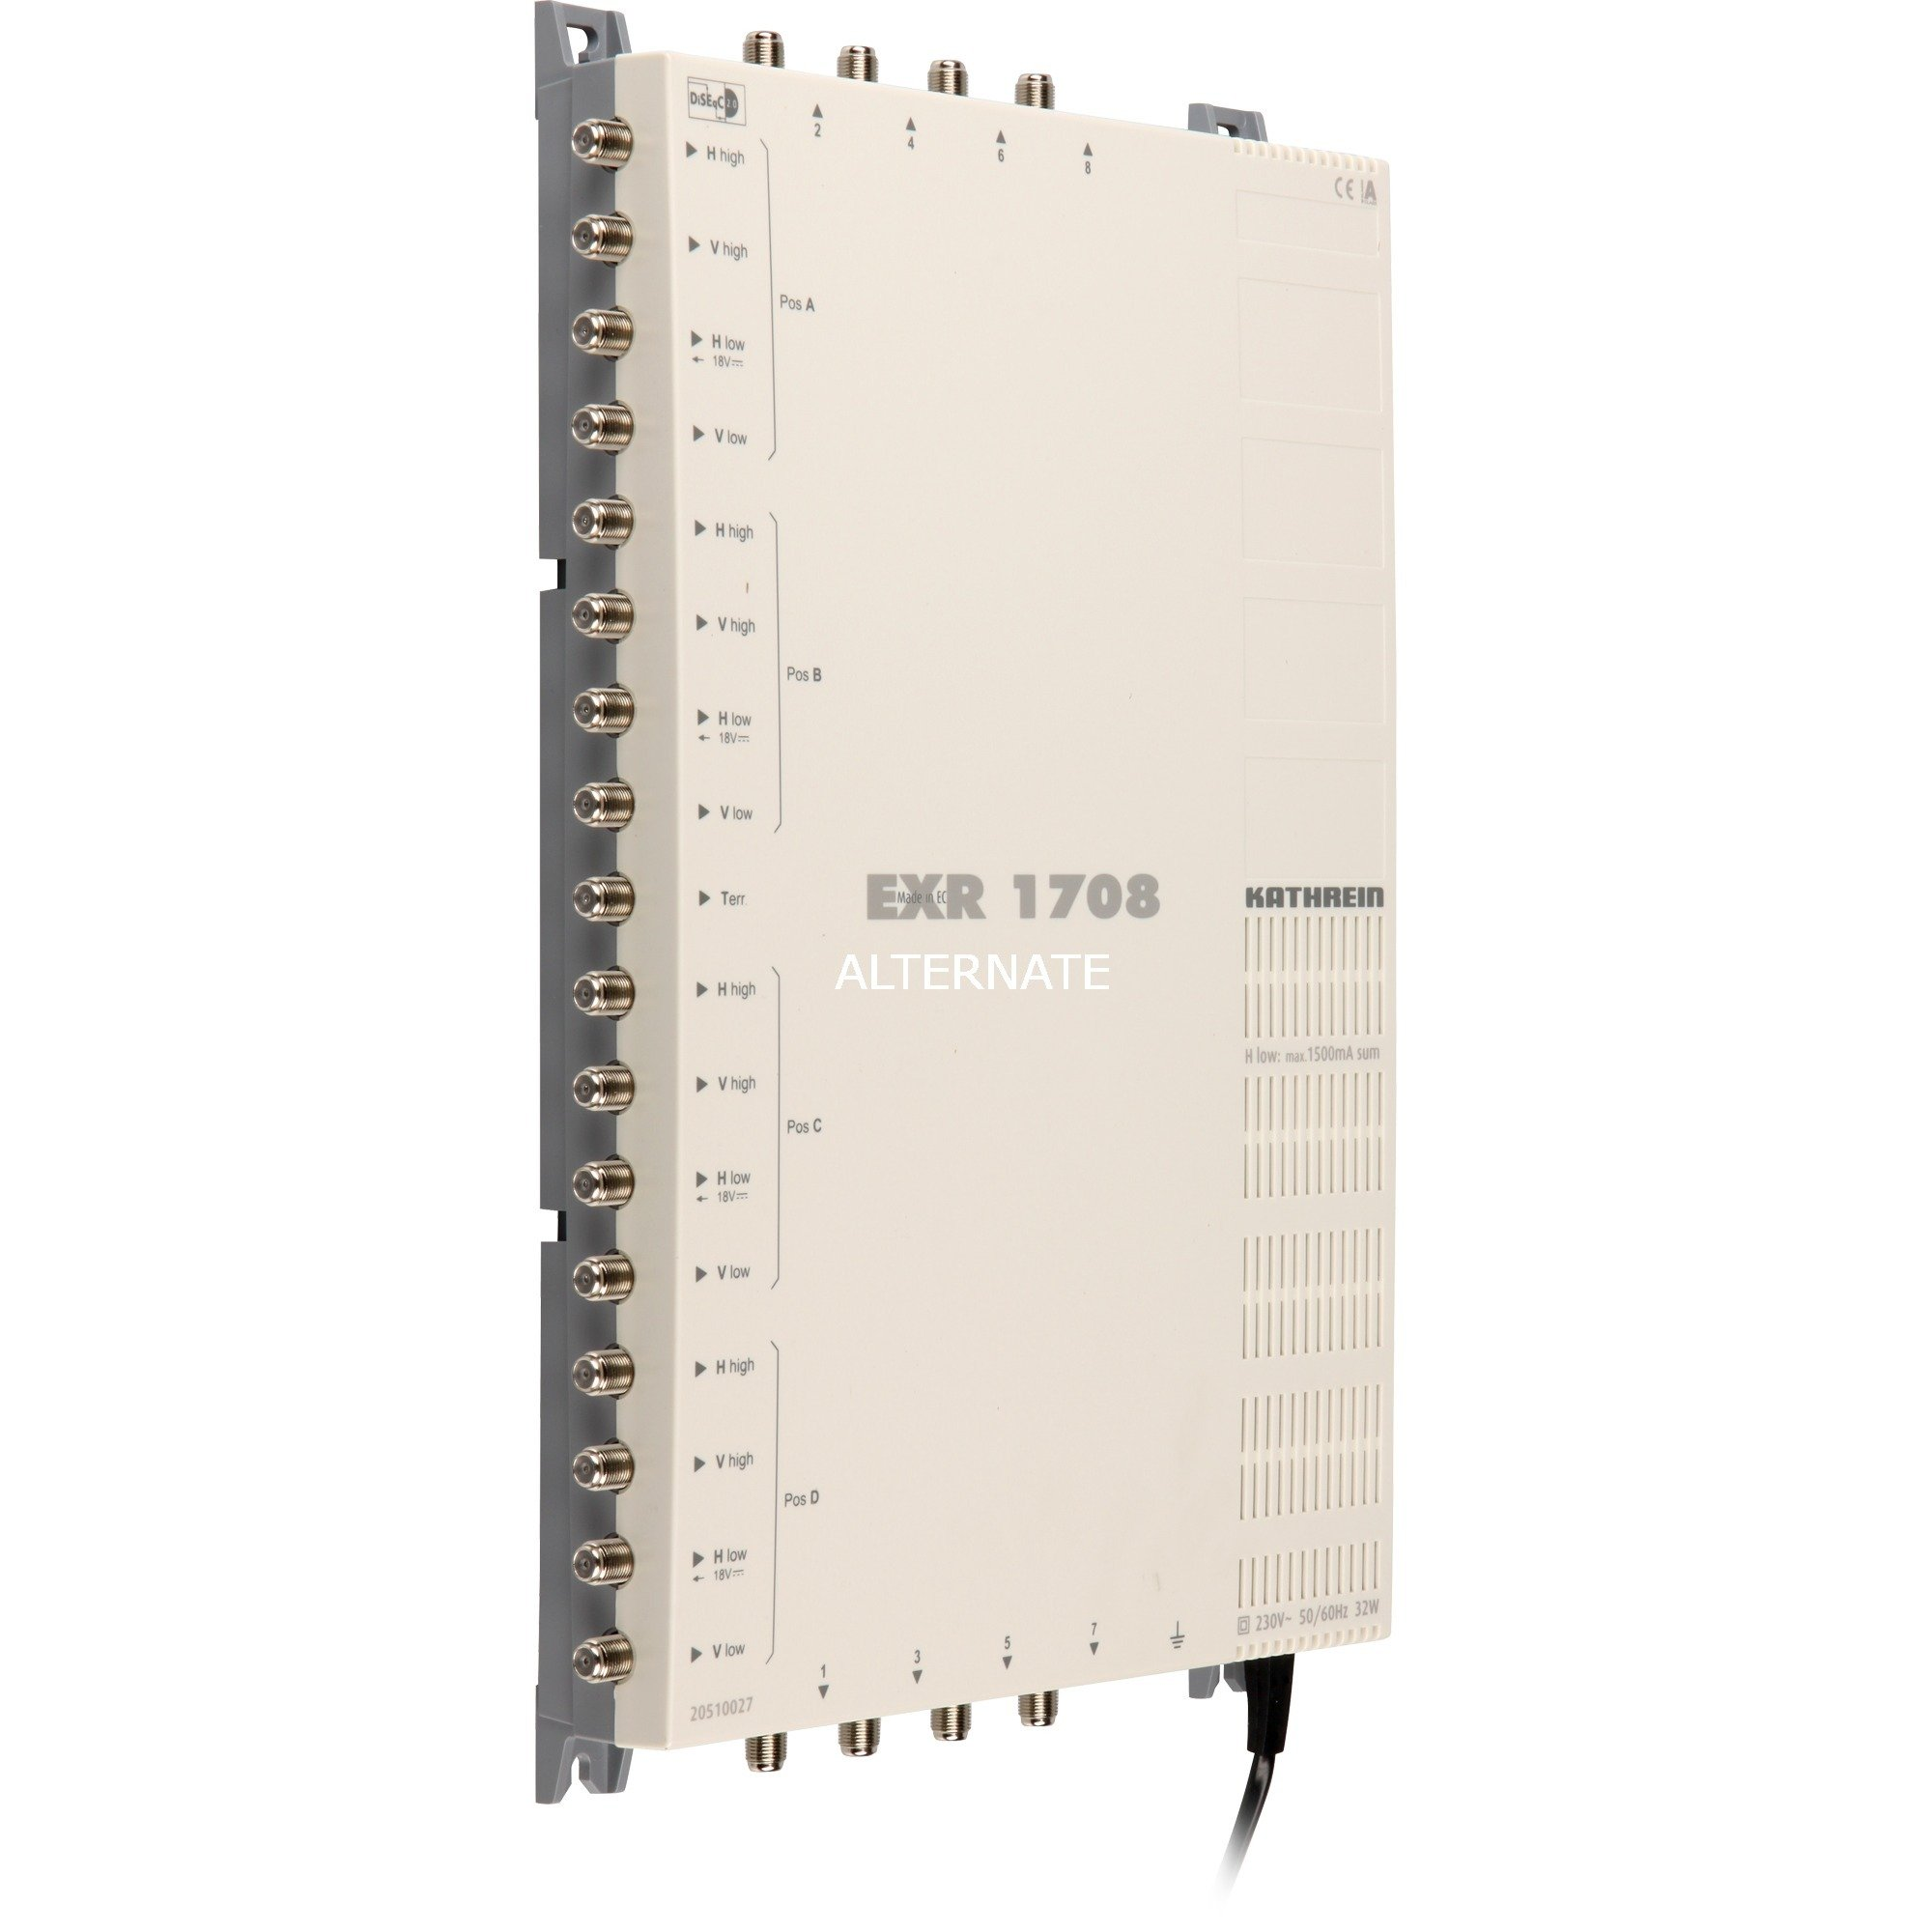 EXR 1542 5inputs 2outputs commutateur multiple satellite, Multi commutateur